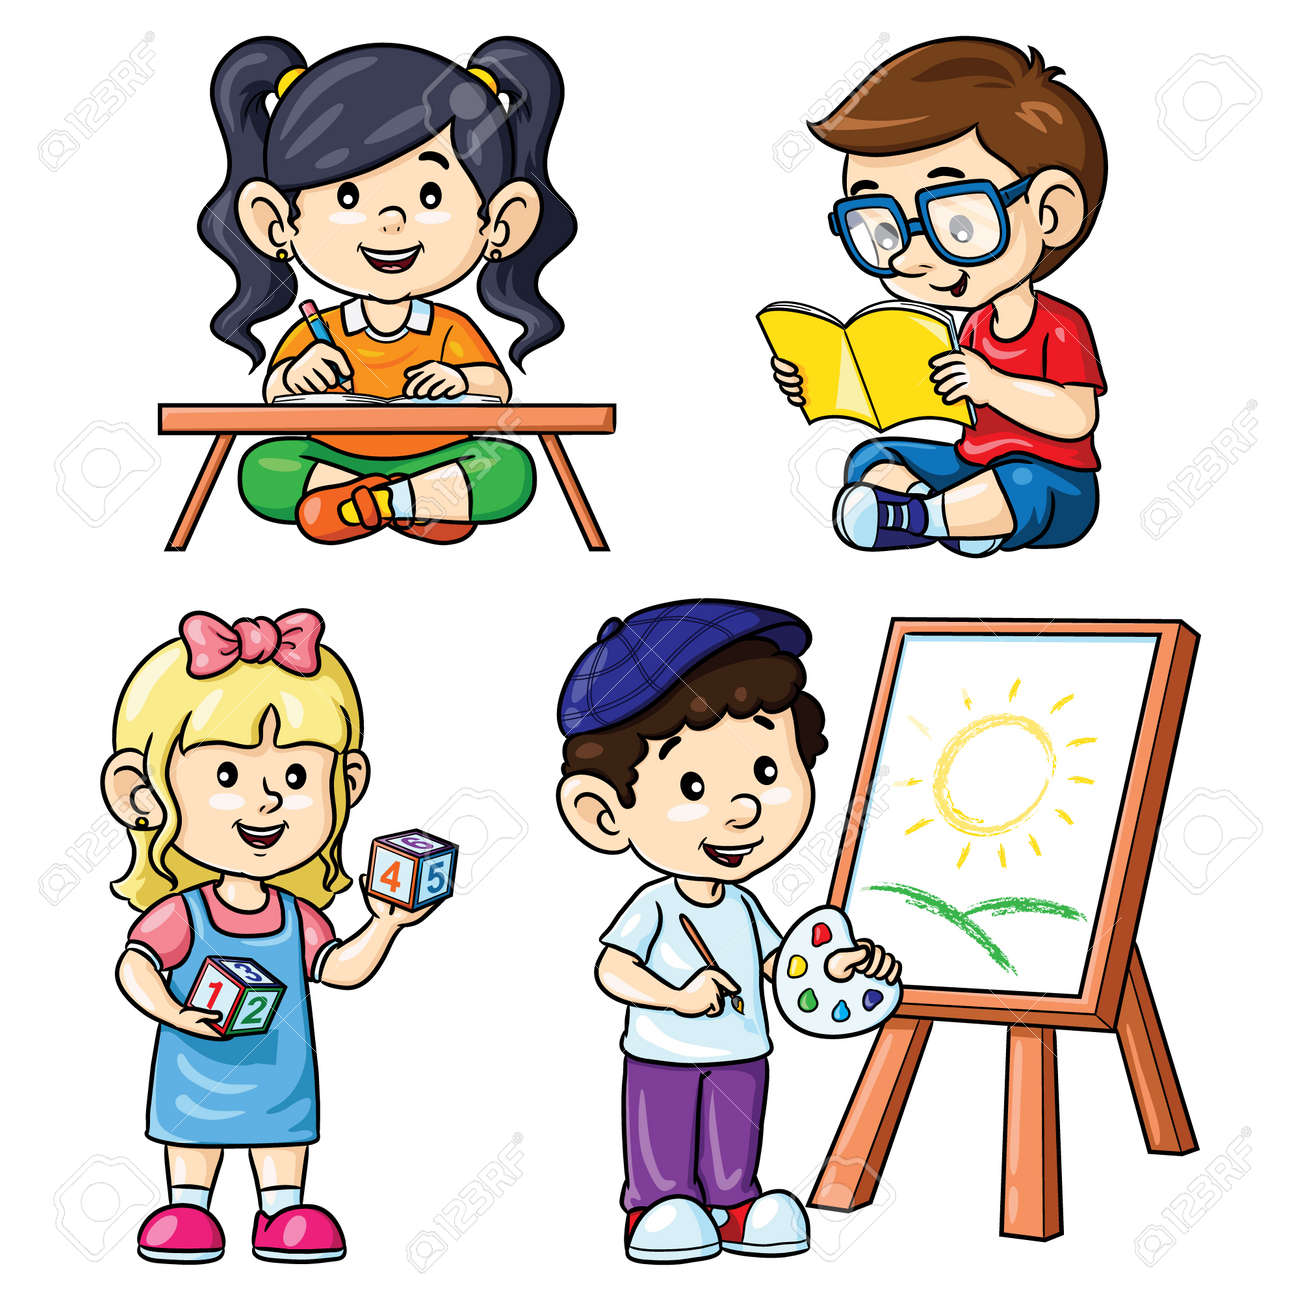 Letter a letter writing clipart clipartfest boy | Writing clipart, Kids  writing desk, Realistic fiction writing